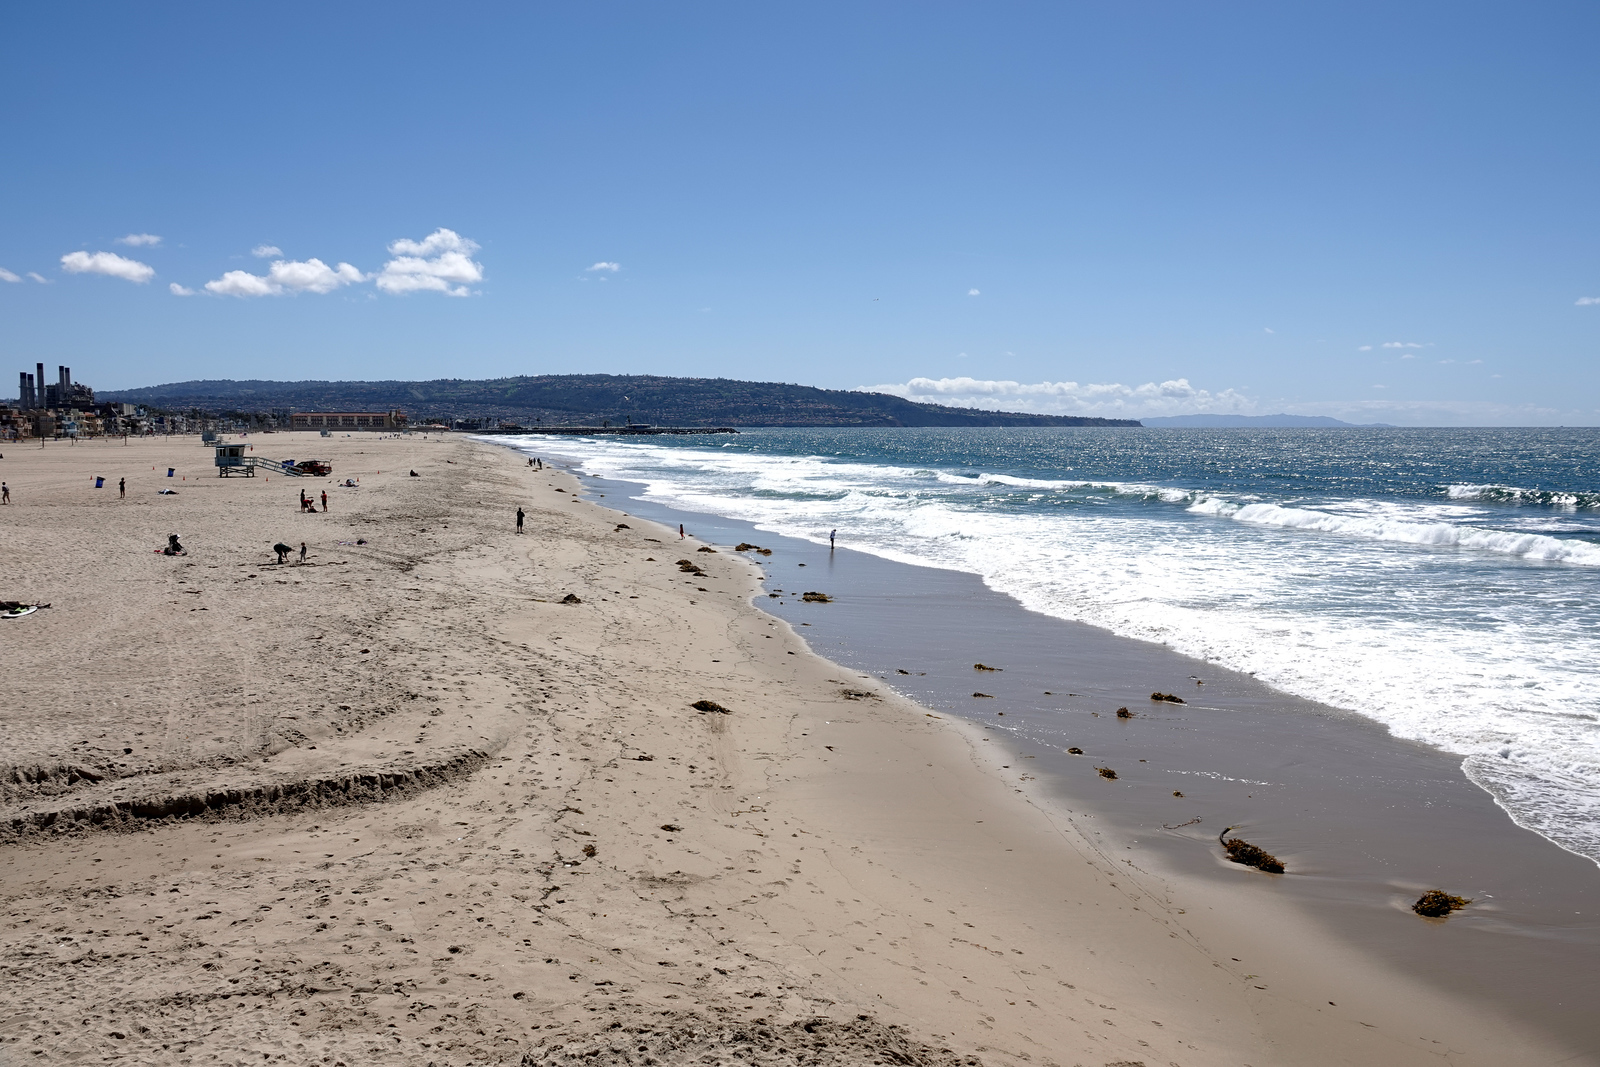 A view of the coast looking to Redondo Beach and Palos Verdes from the Hermosa Beach Pier